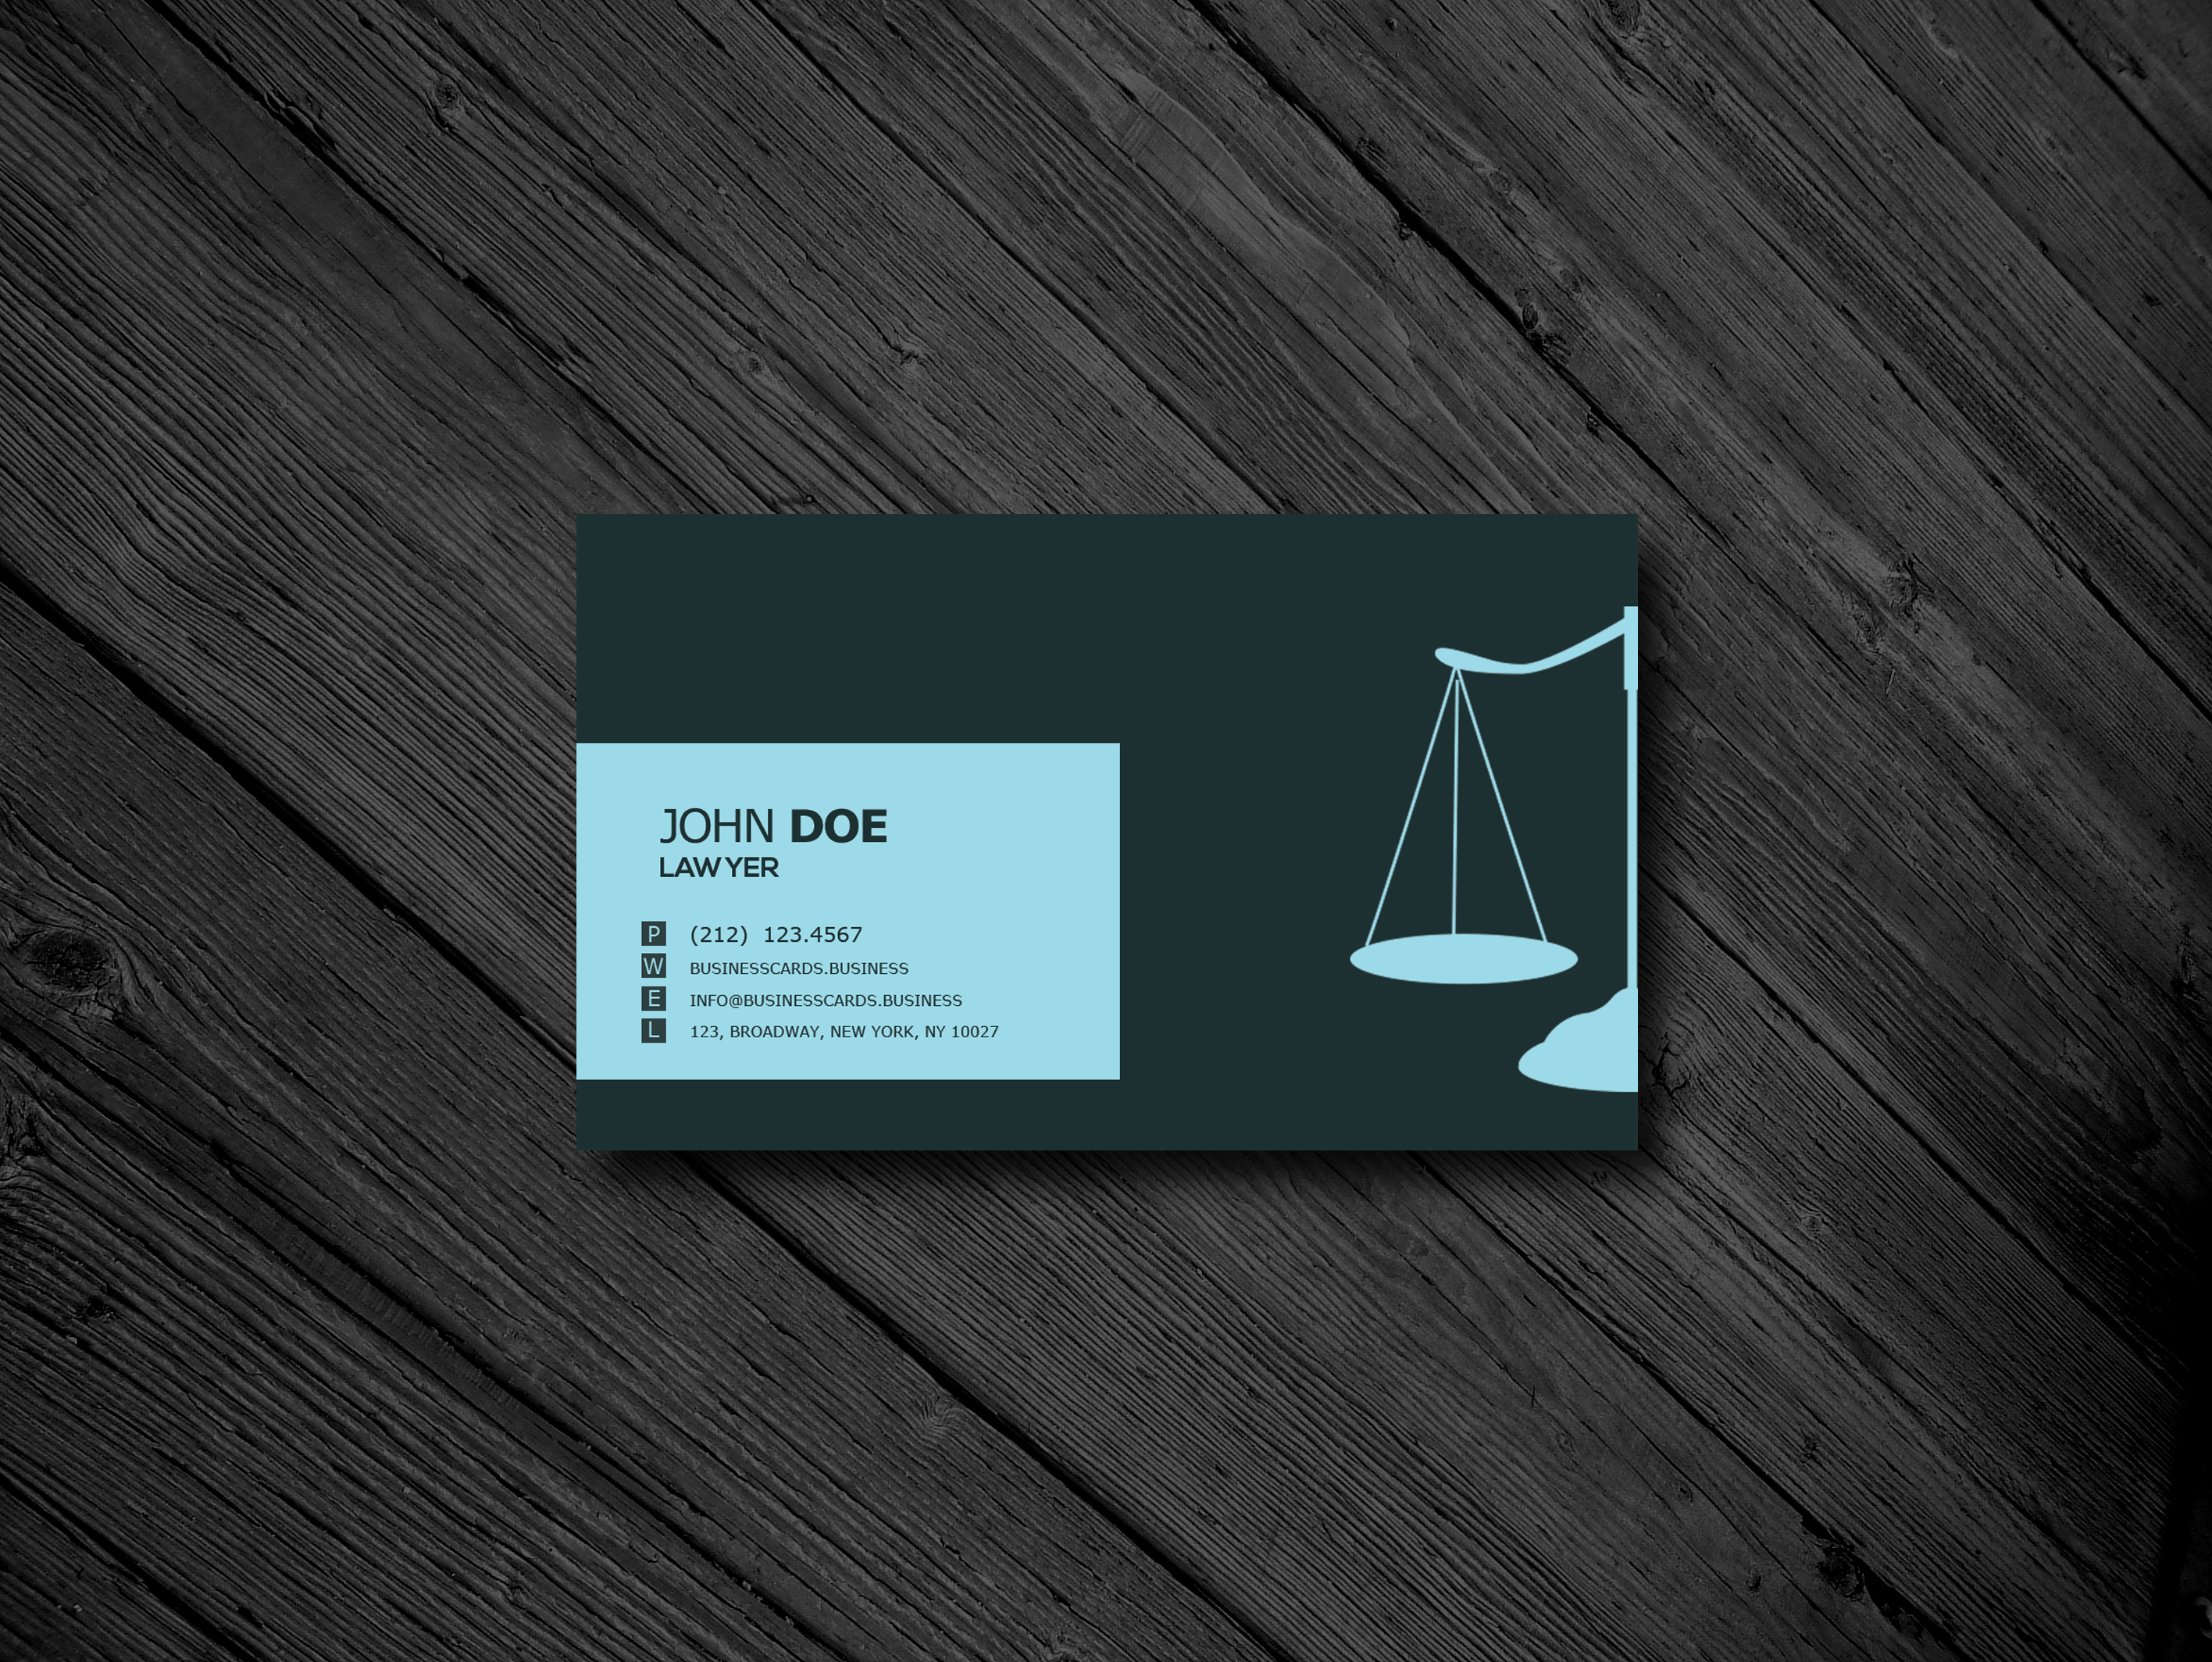 Free business card templates business cards templates free lawyer business card psd template accmission Image collections